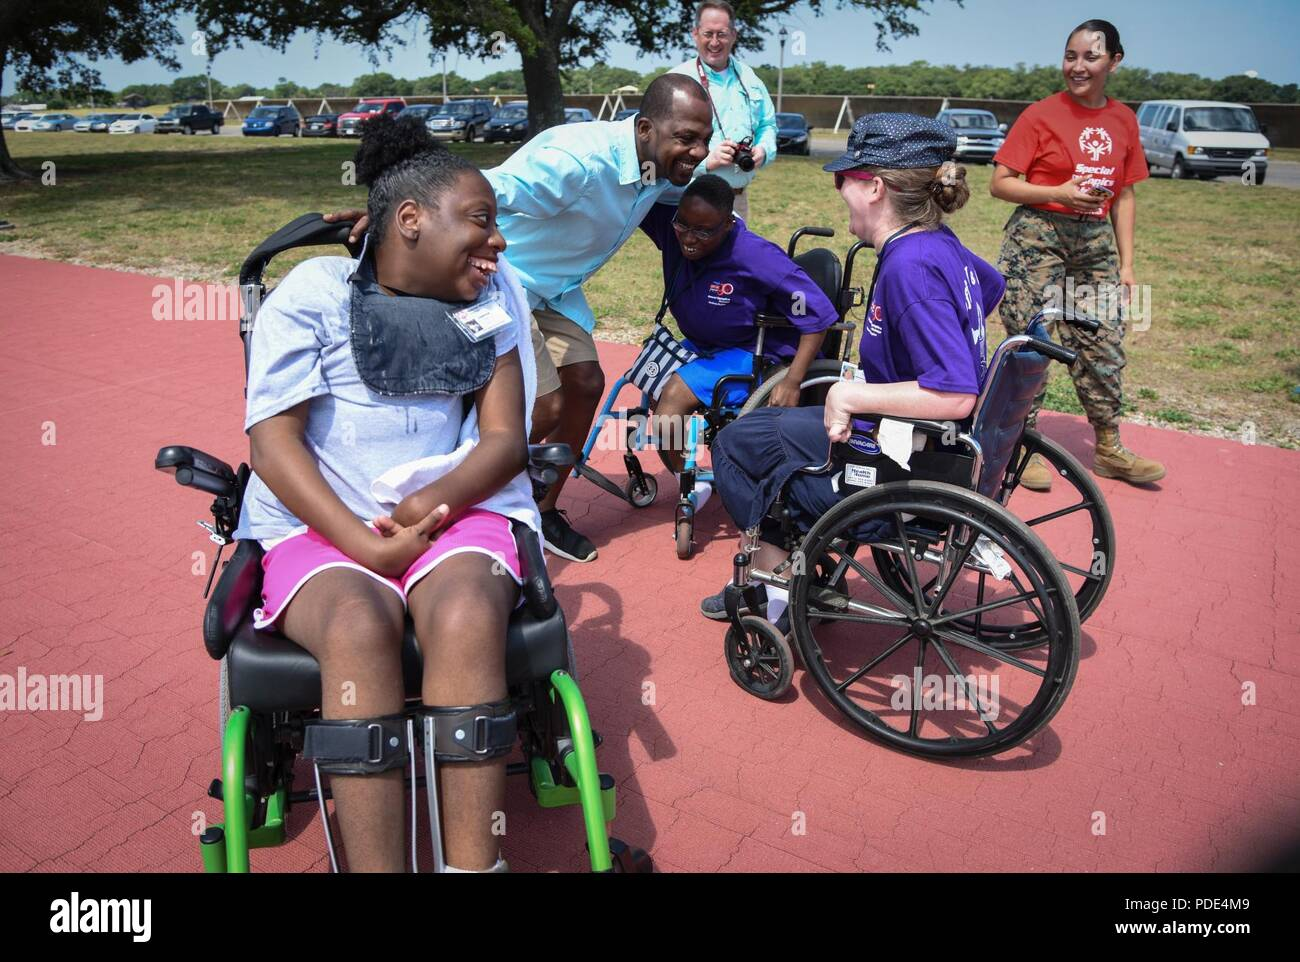 wheelchair olympics ergonomic chair design pdf vincent girley father of an athlete congratulates competitors after the 25 meter race during special mississippi 2018 summer games